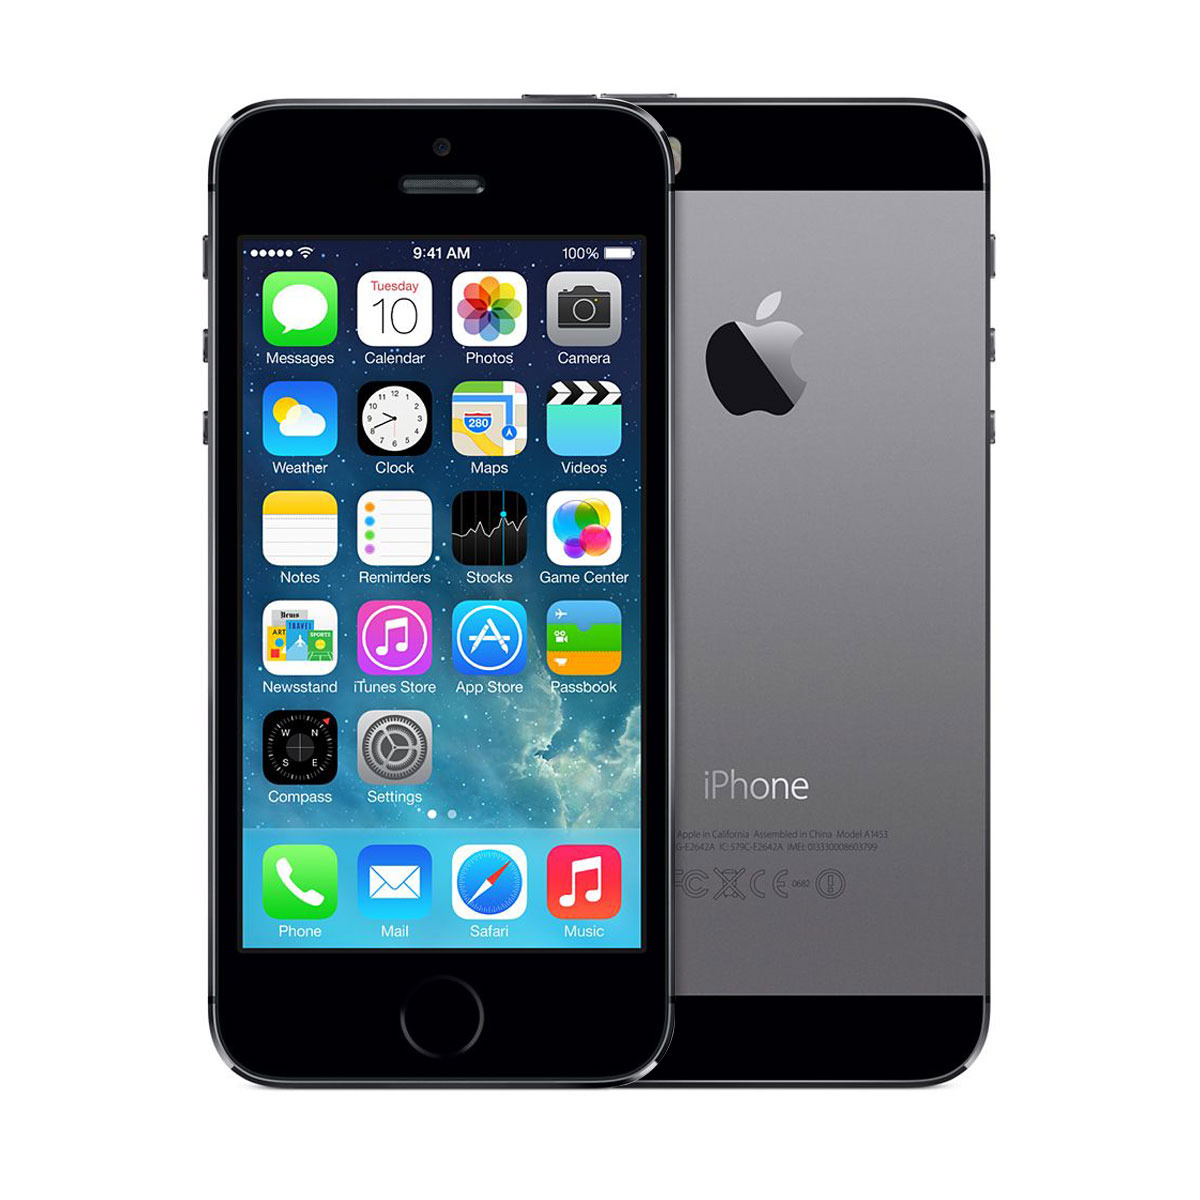 space gray iphone apple iphone 5s 16gb space grey sleviste cz 13006